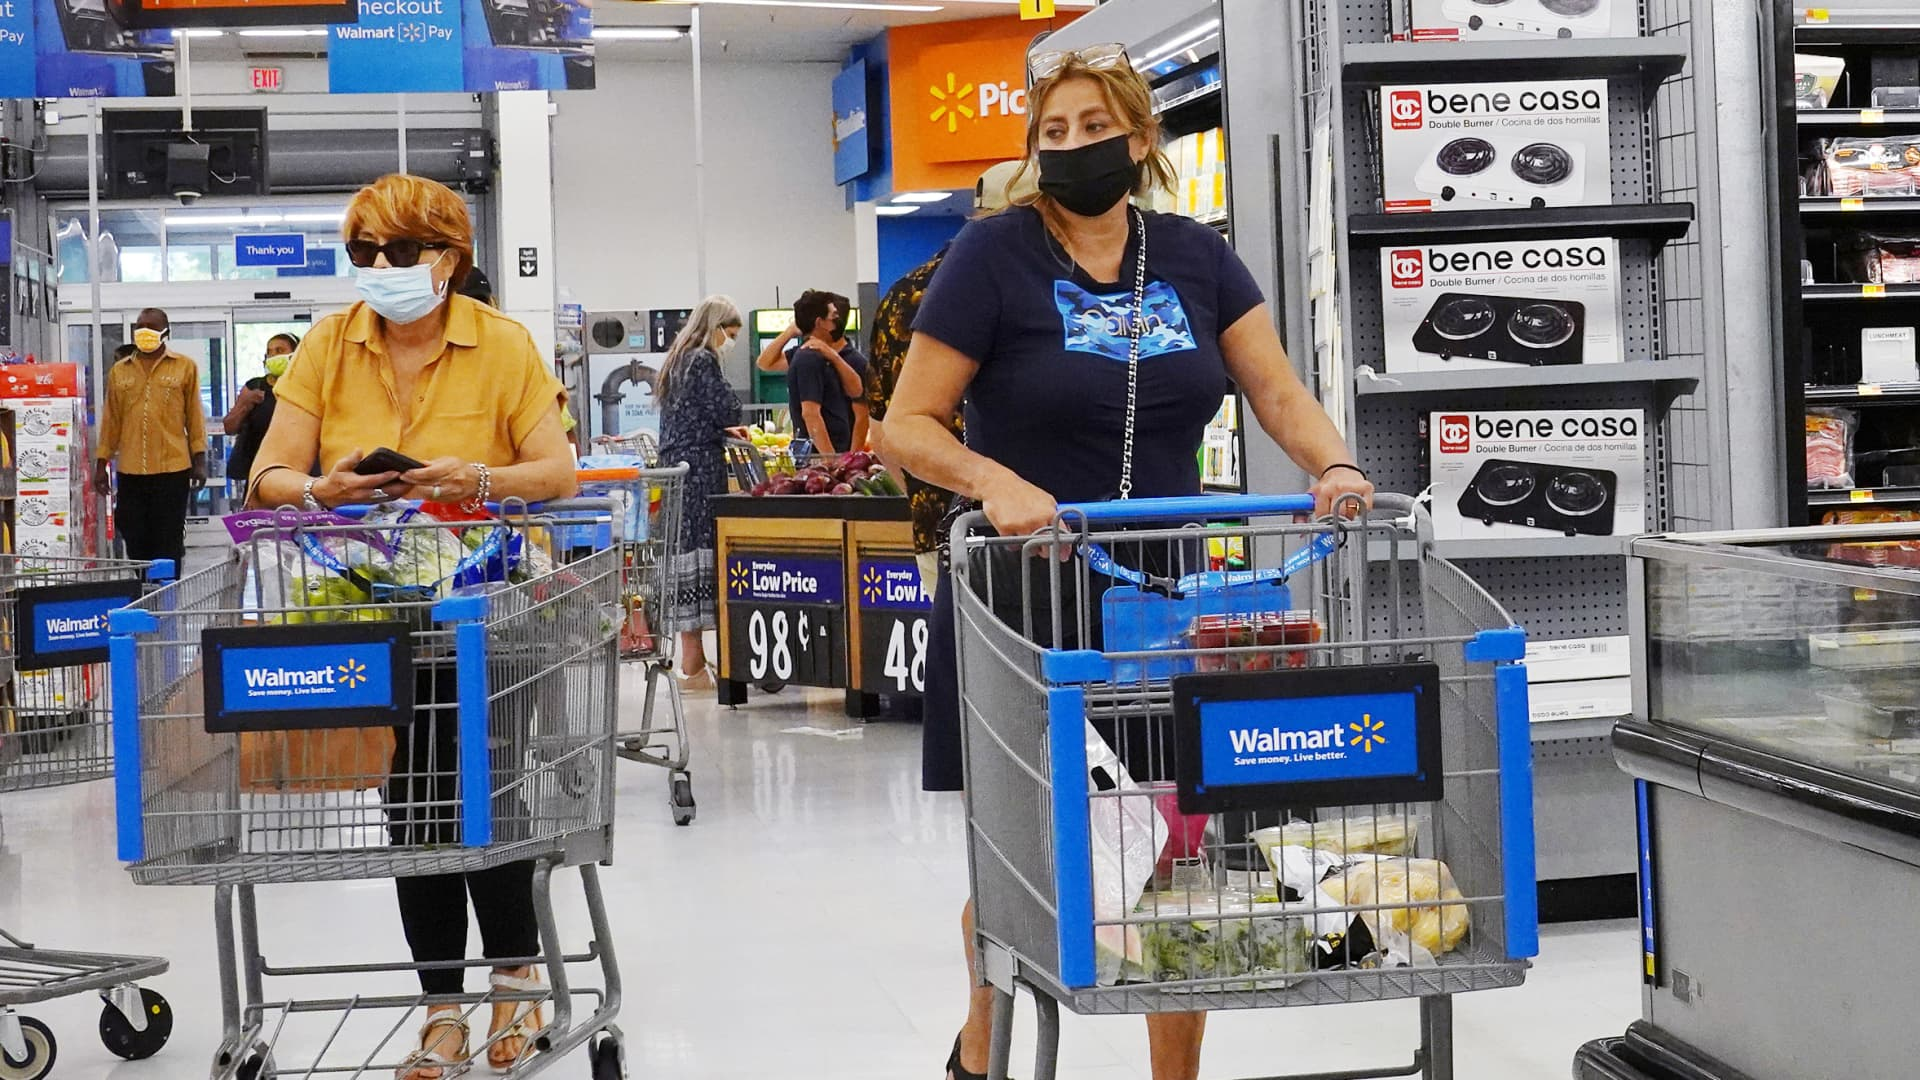 People wearing protective masks shop in a Walmart store on May 18, 2021 in Hallandale Beach, Florida.